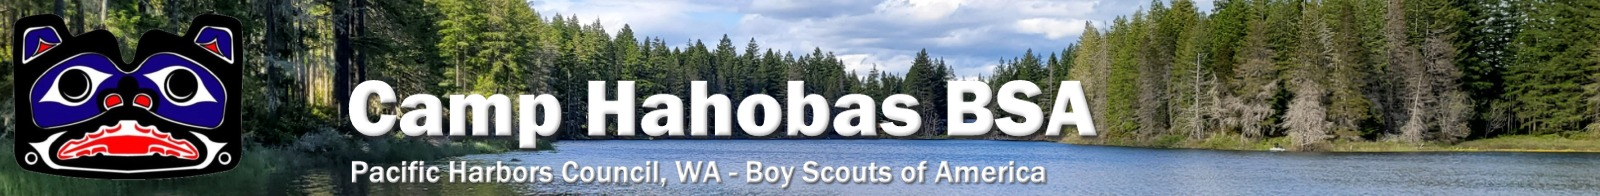 Camp Habobas Scout Reservation - Pacific Harbors, WA - Boy Scouts of America